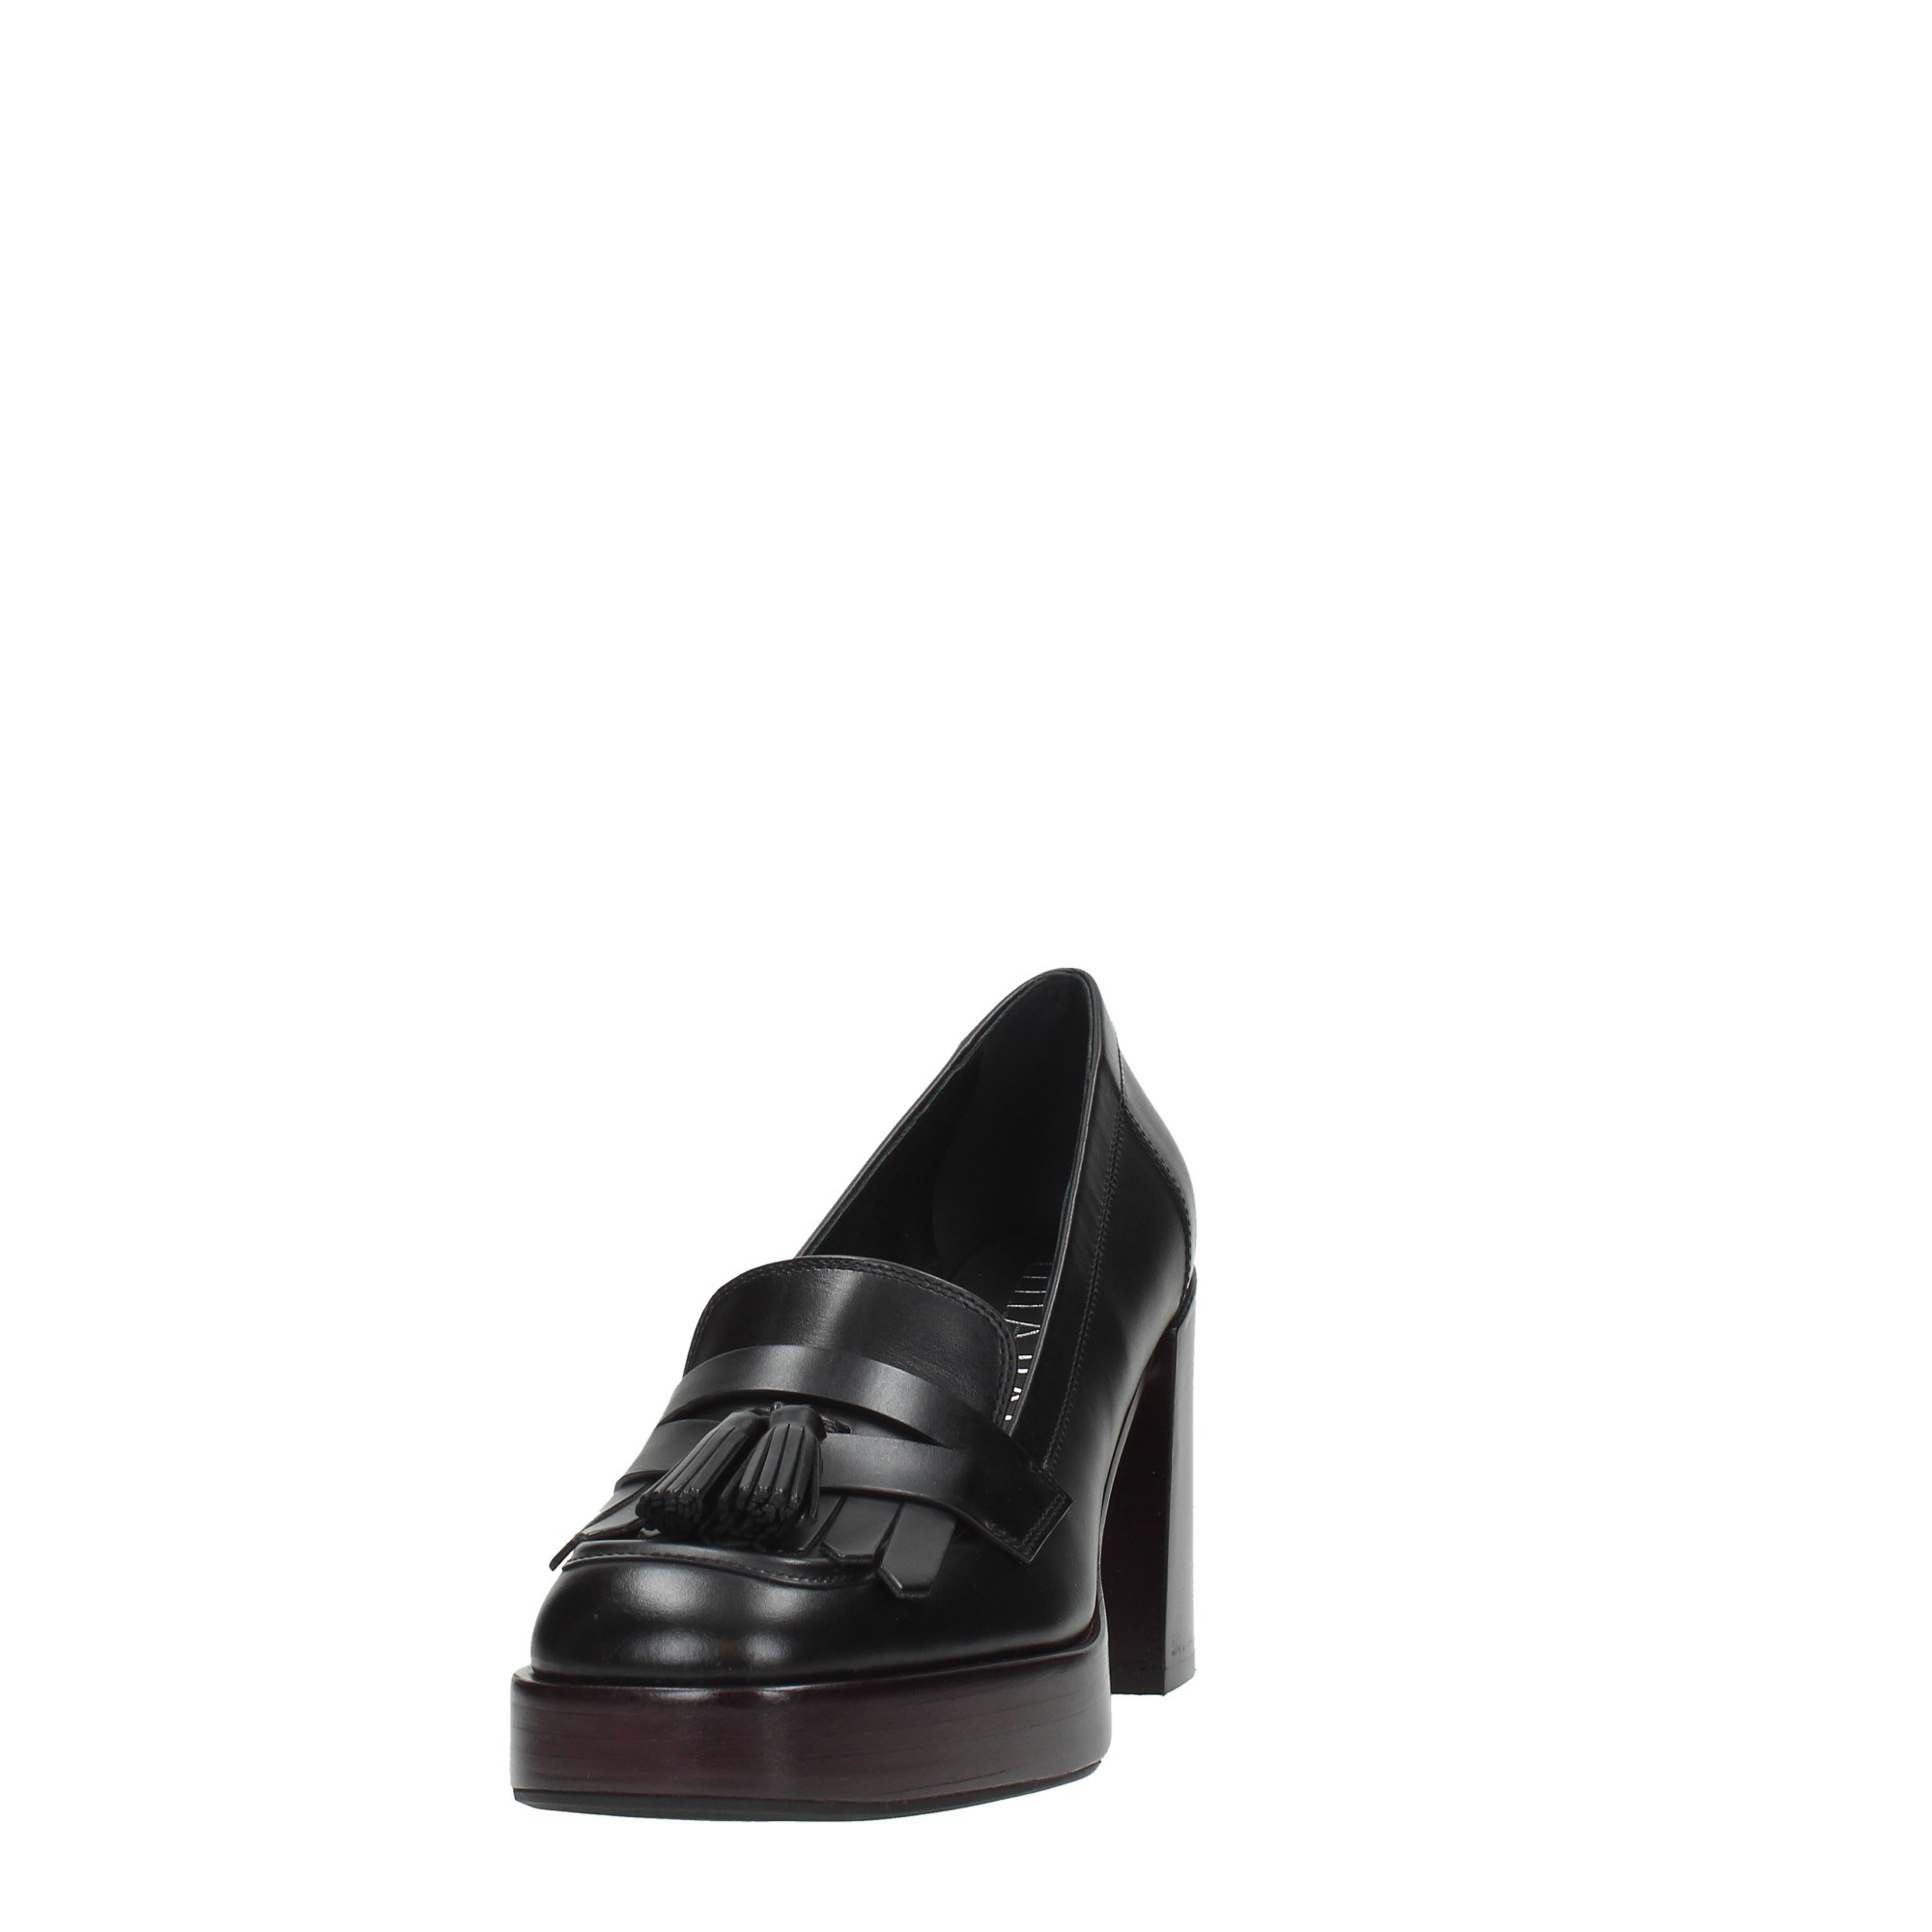 Lella Baldi Shoes Women Classic Shoes Black 181